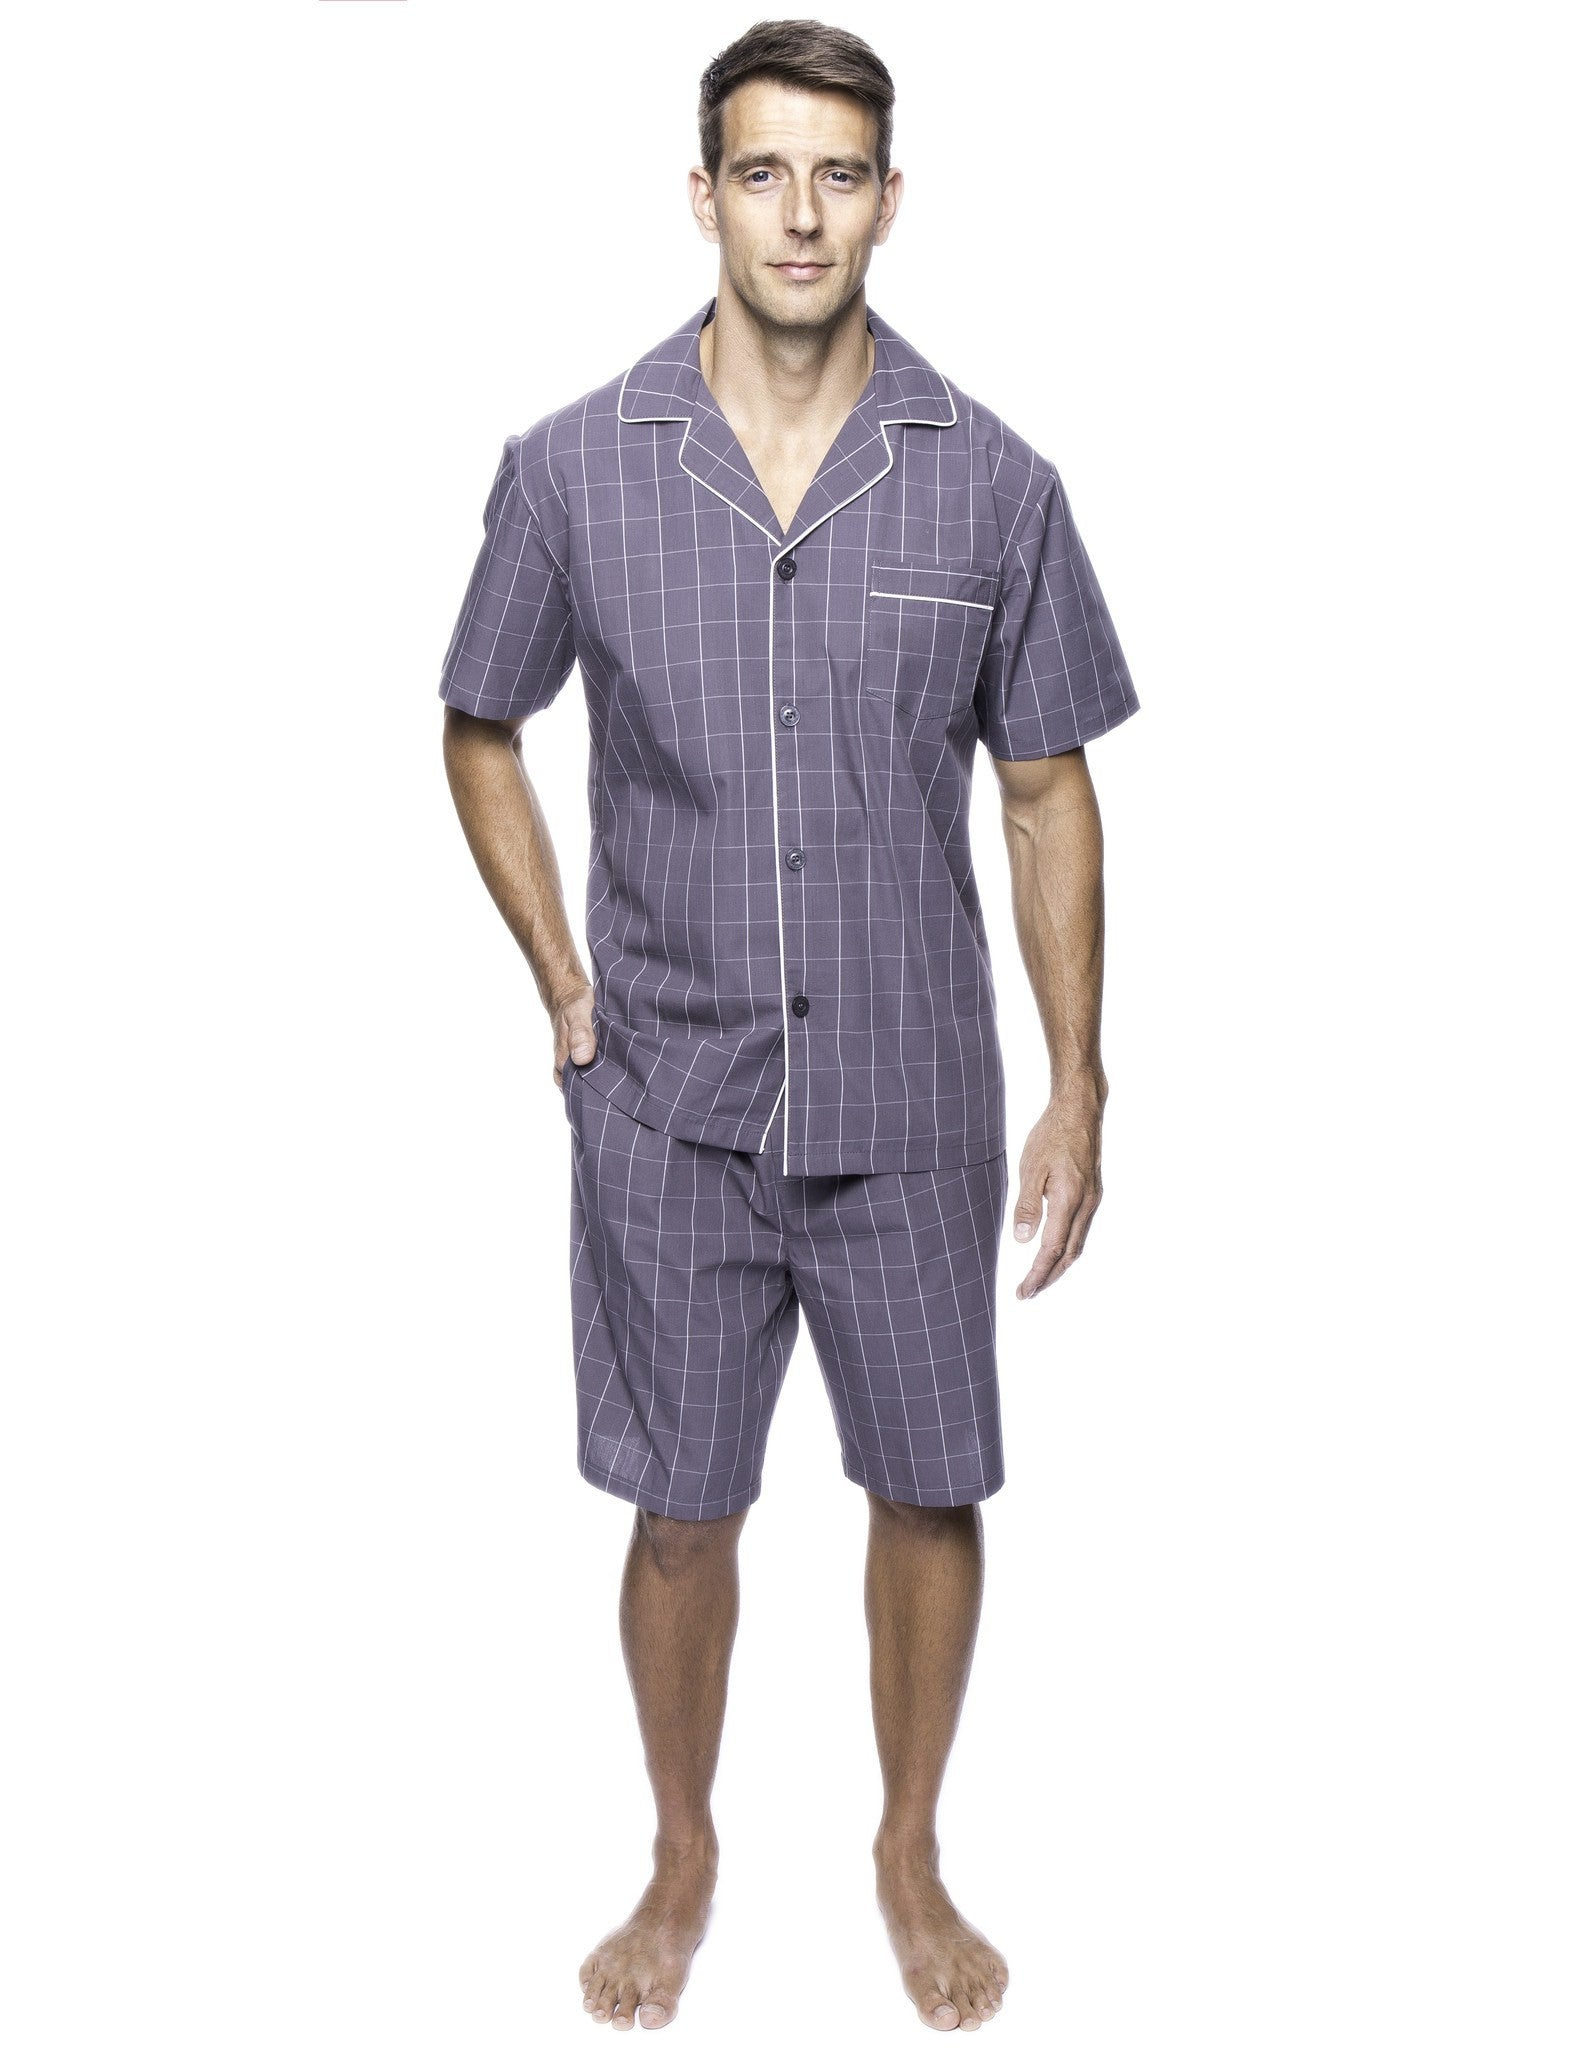 78df64f5e3fc1 Twin Boat Men's 100% Woven Cotton Short Pajama Sleepwear Set